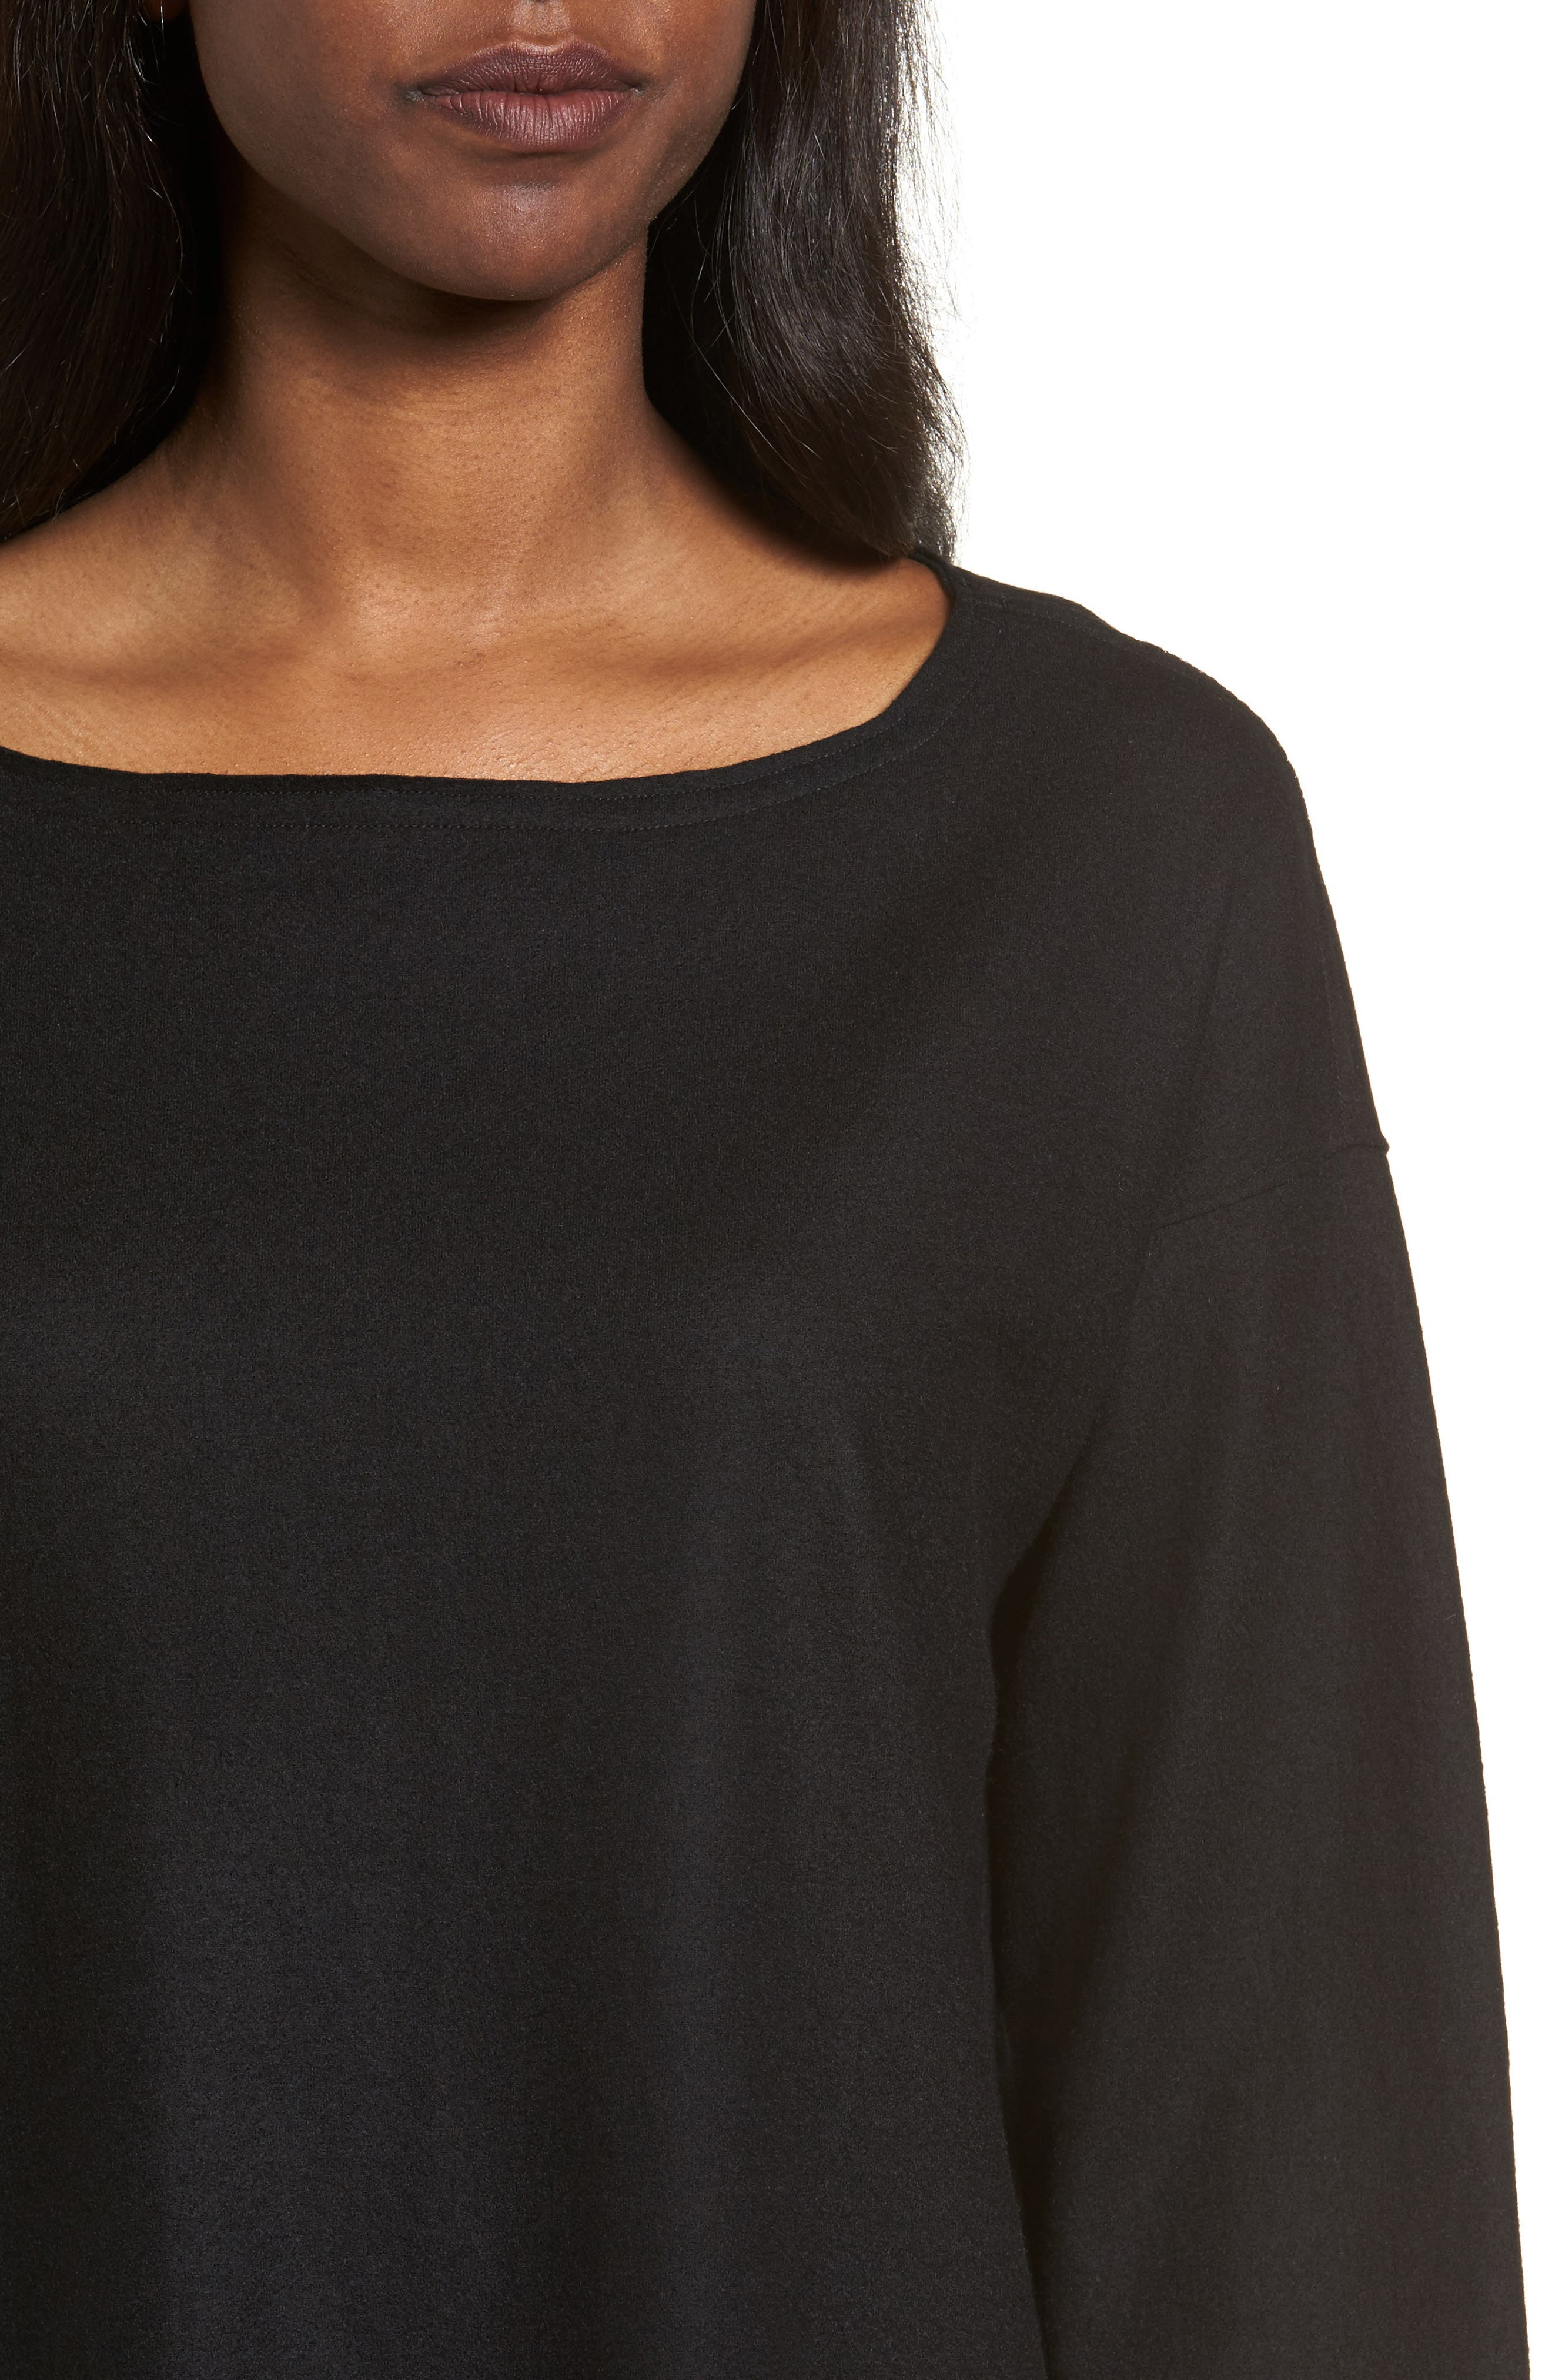 Boiled Wool Jersey Top,                             Alternate thumbnail 4, color,                             001